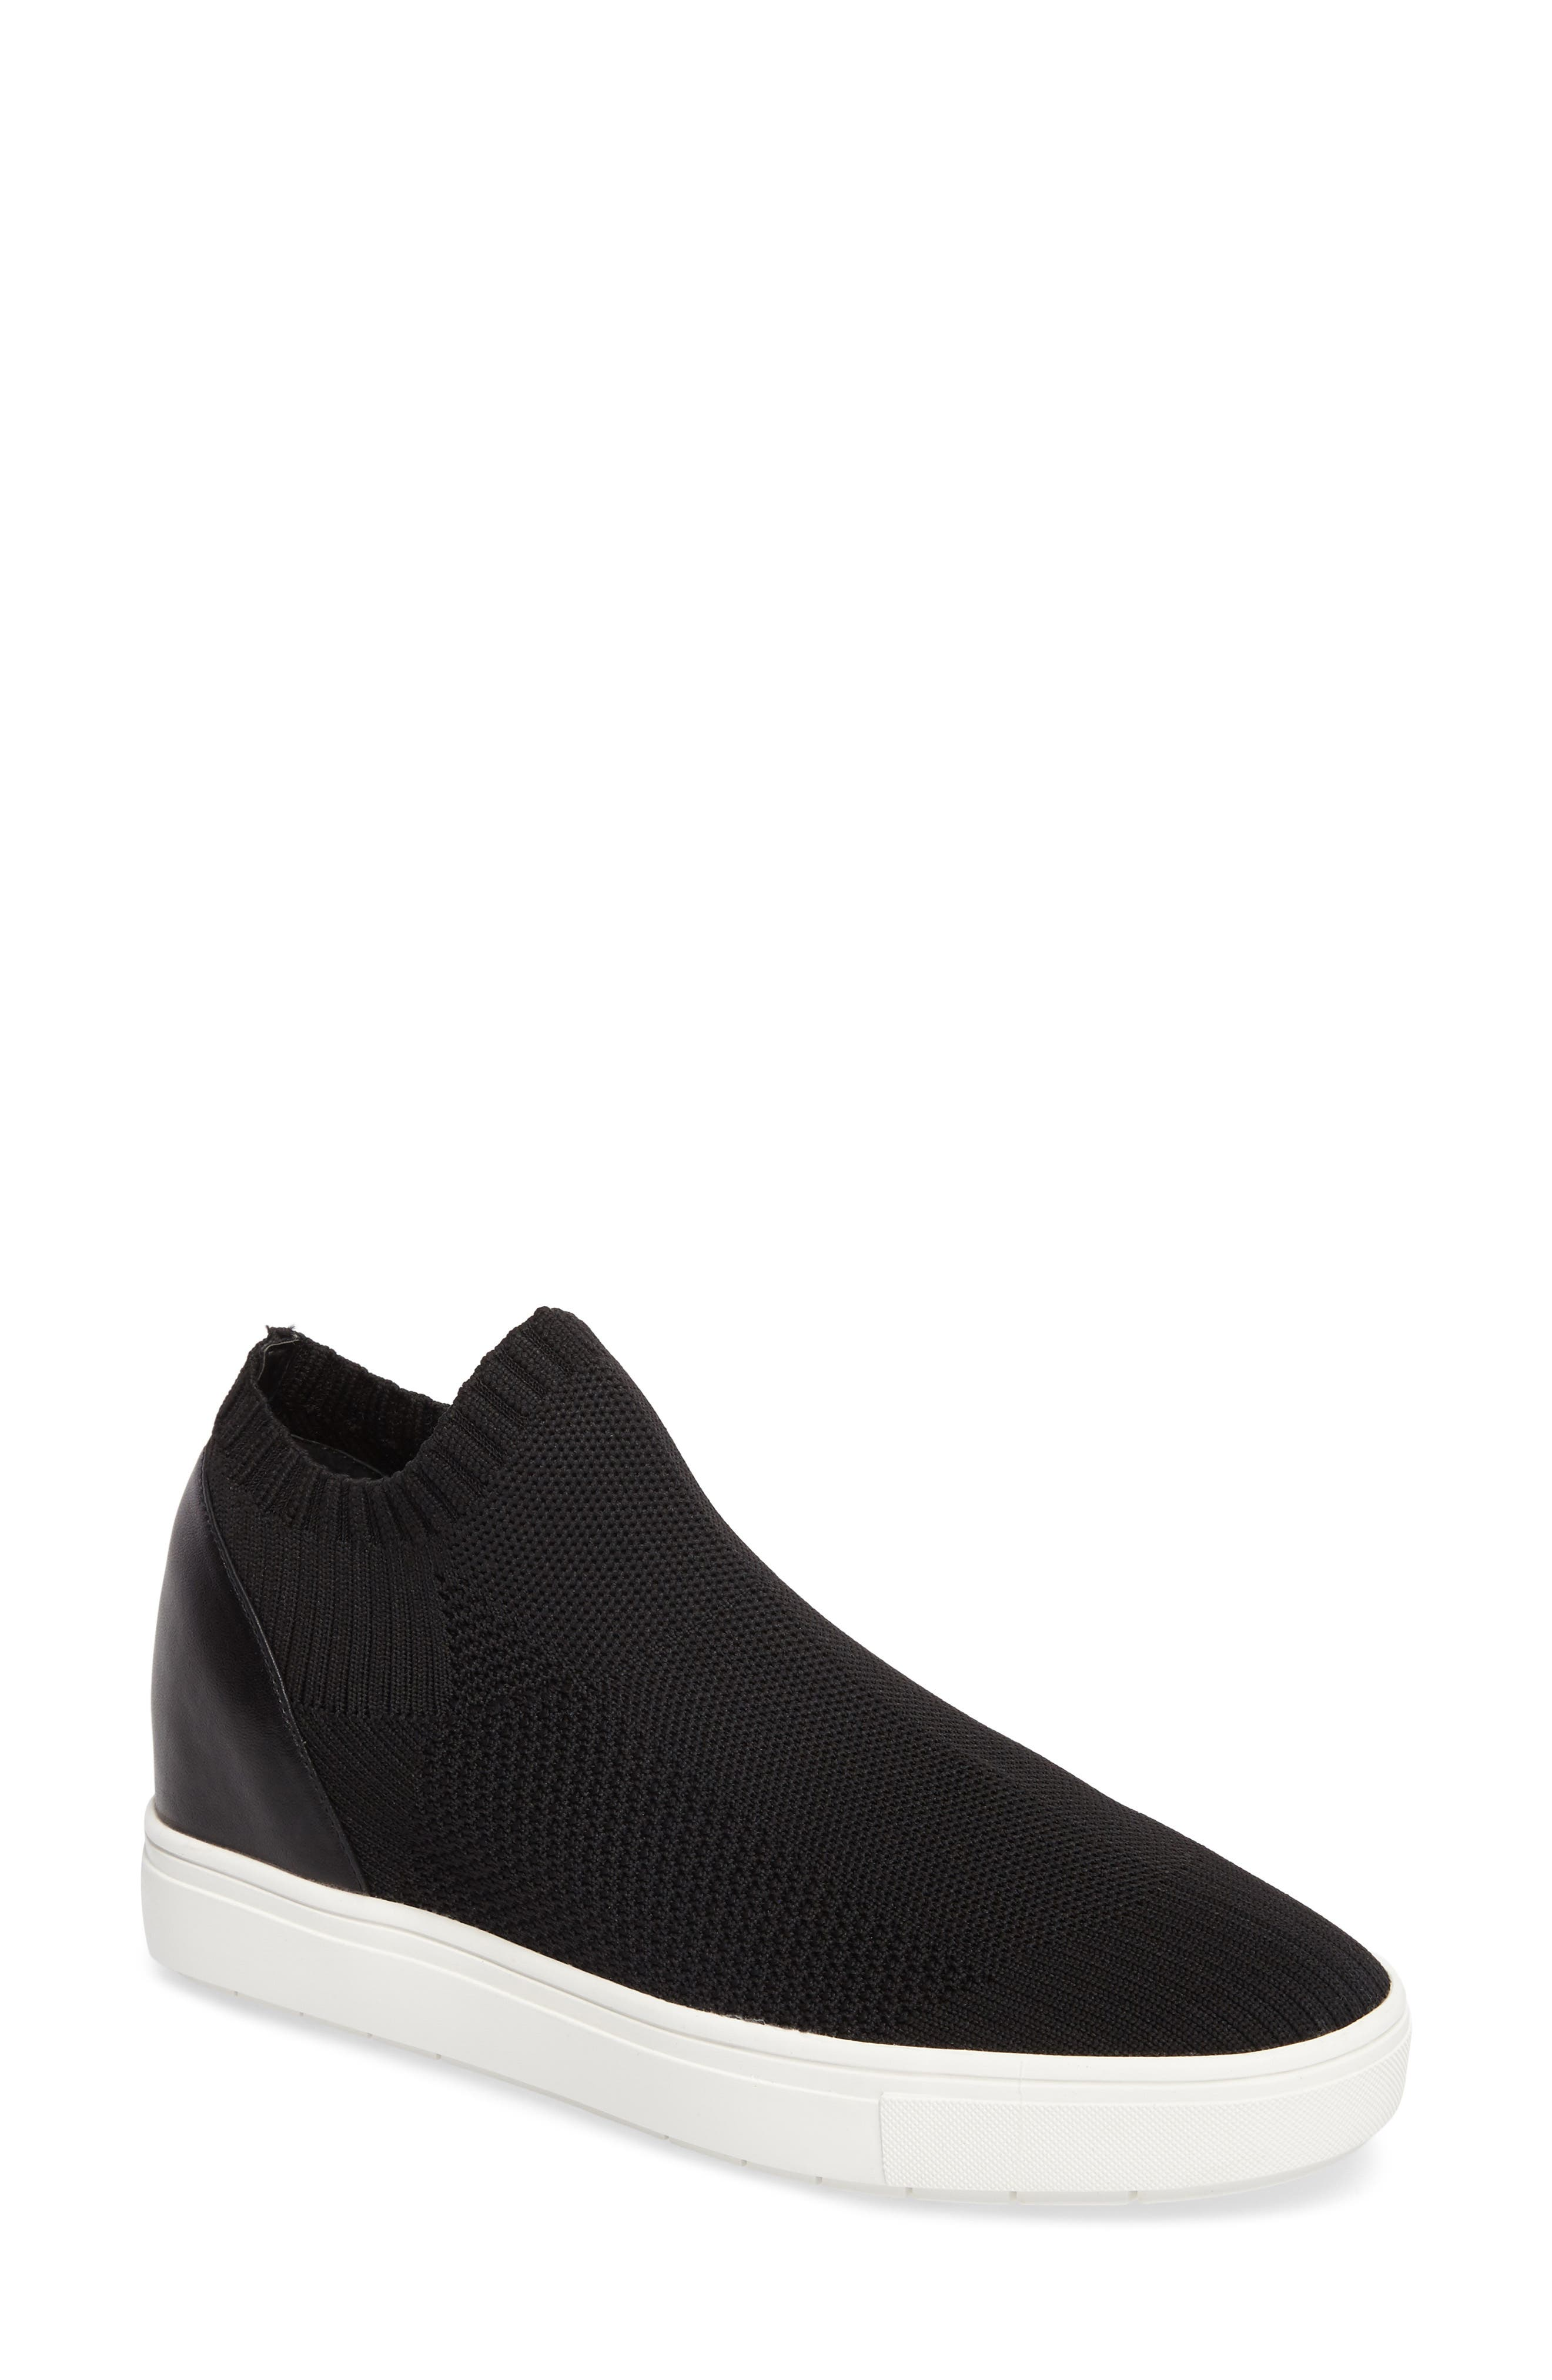 Sly Hidden Wedge Knit Sneaker,                             Main thumbnail 1, color,                             003